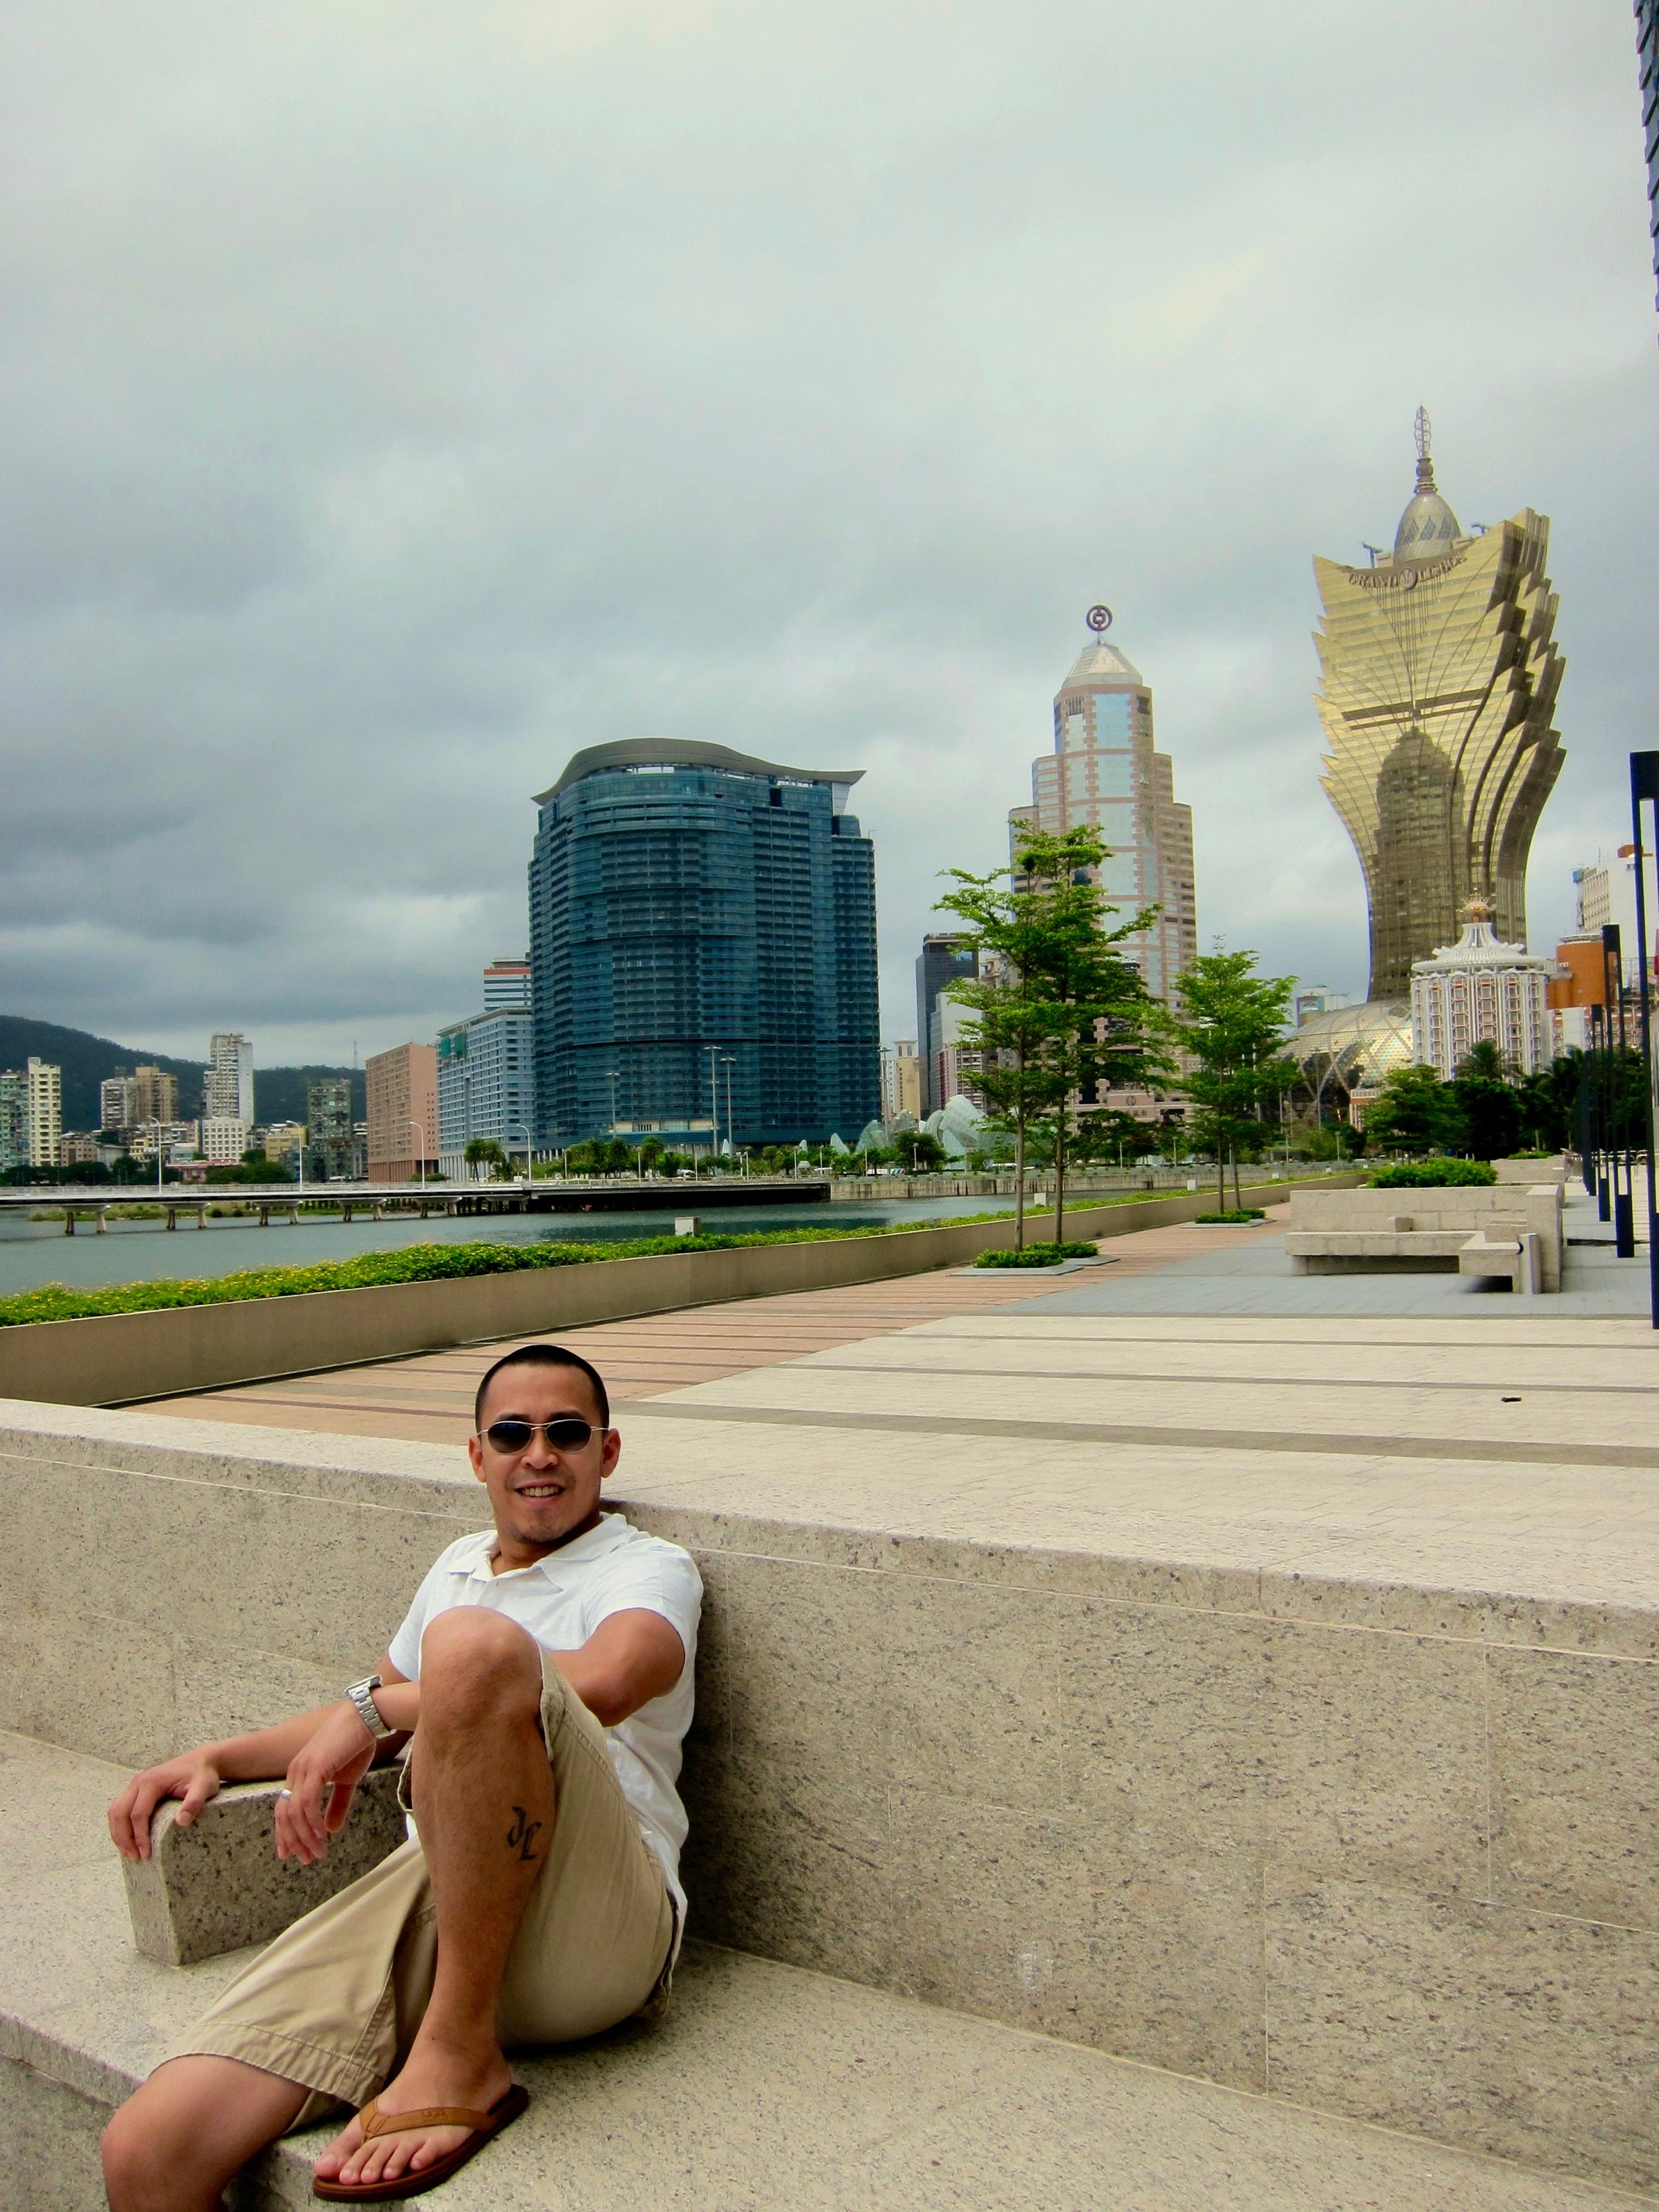 Chillin in Macau, with potentially the ugliest building (casino) ever built in the background....jpeg